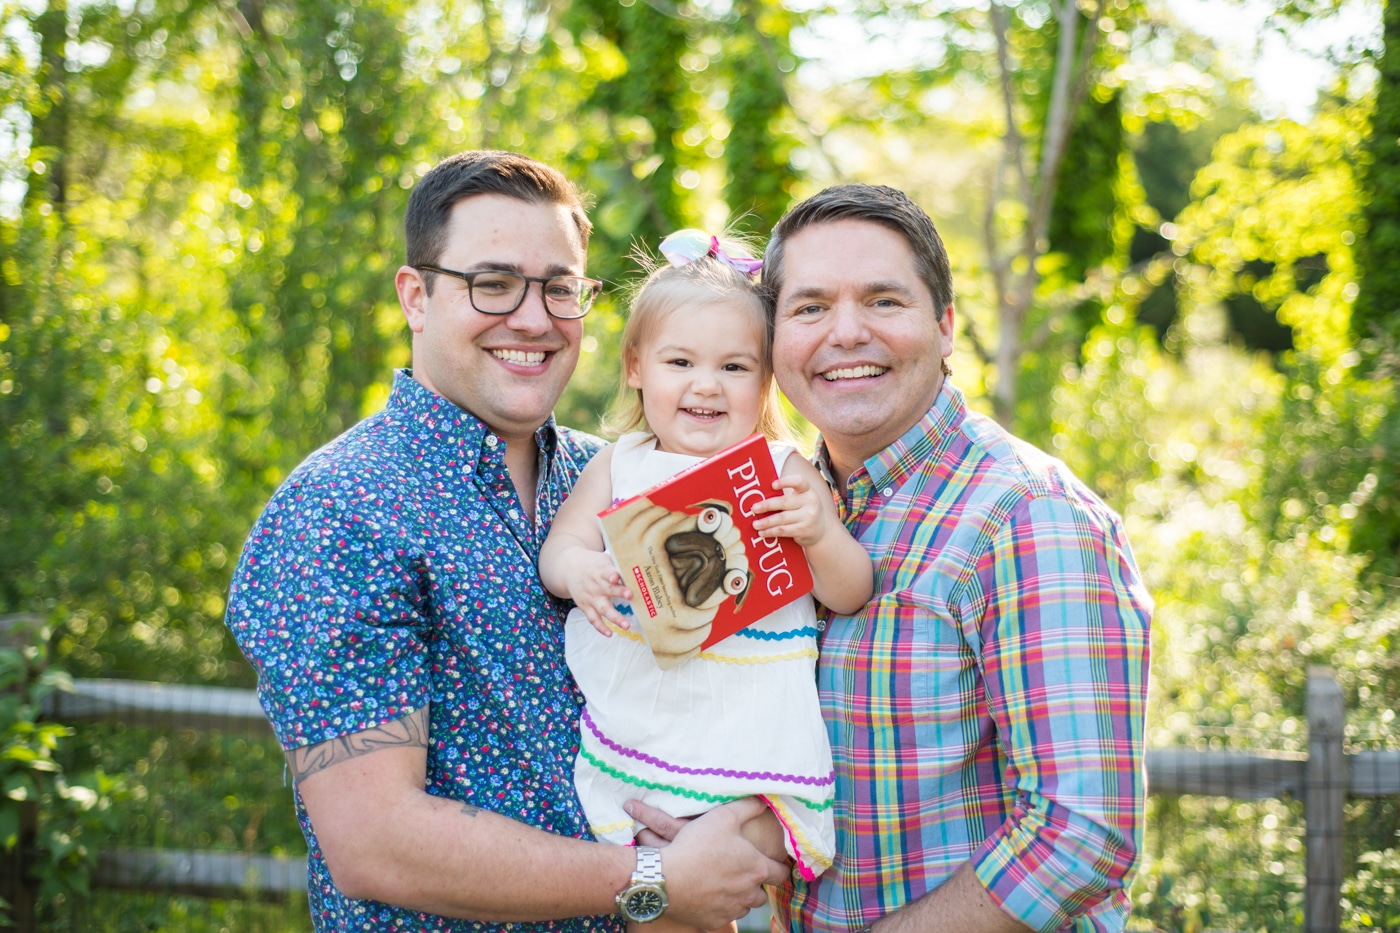 Dads smiling with their toddler holding a book during family photos in Atlanta by Raven Shutley